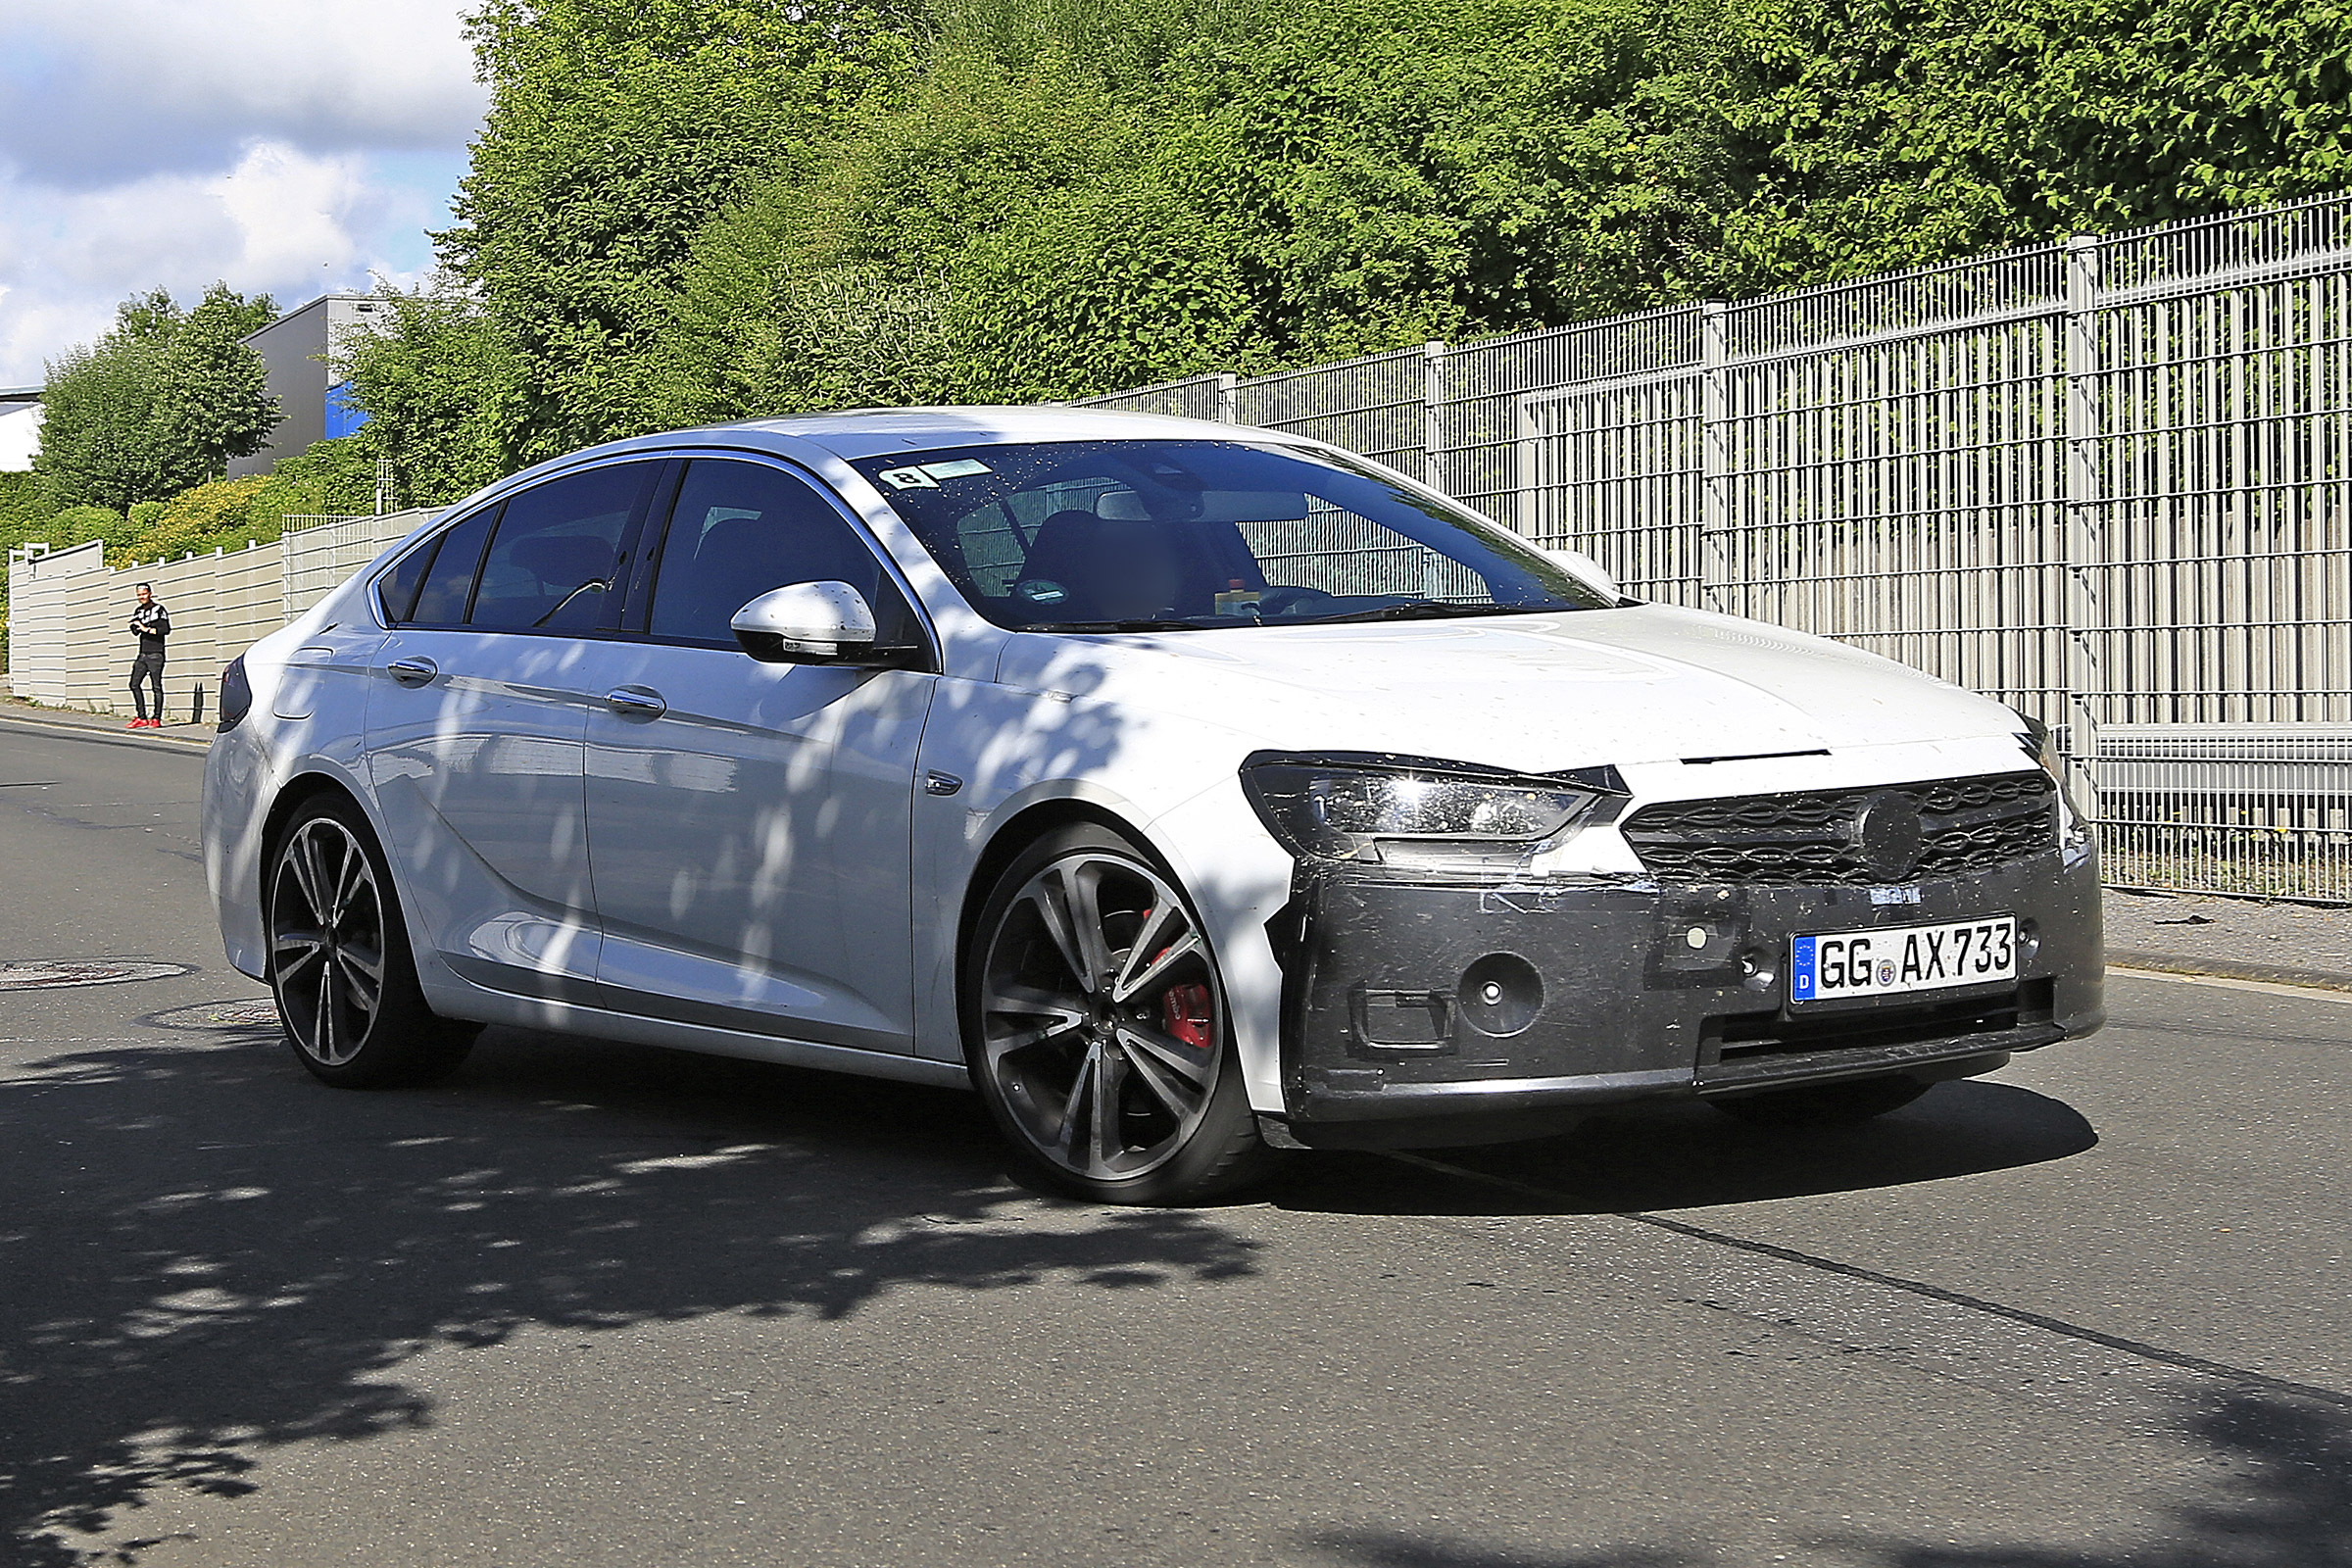 New 2020 Vauxhall Insignia facelift spotted testing | Auto ...